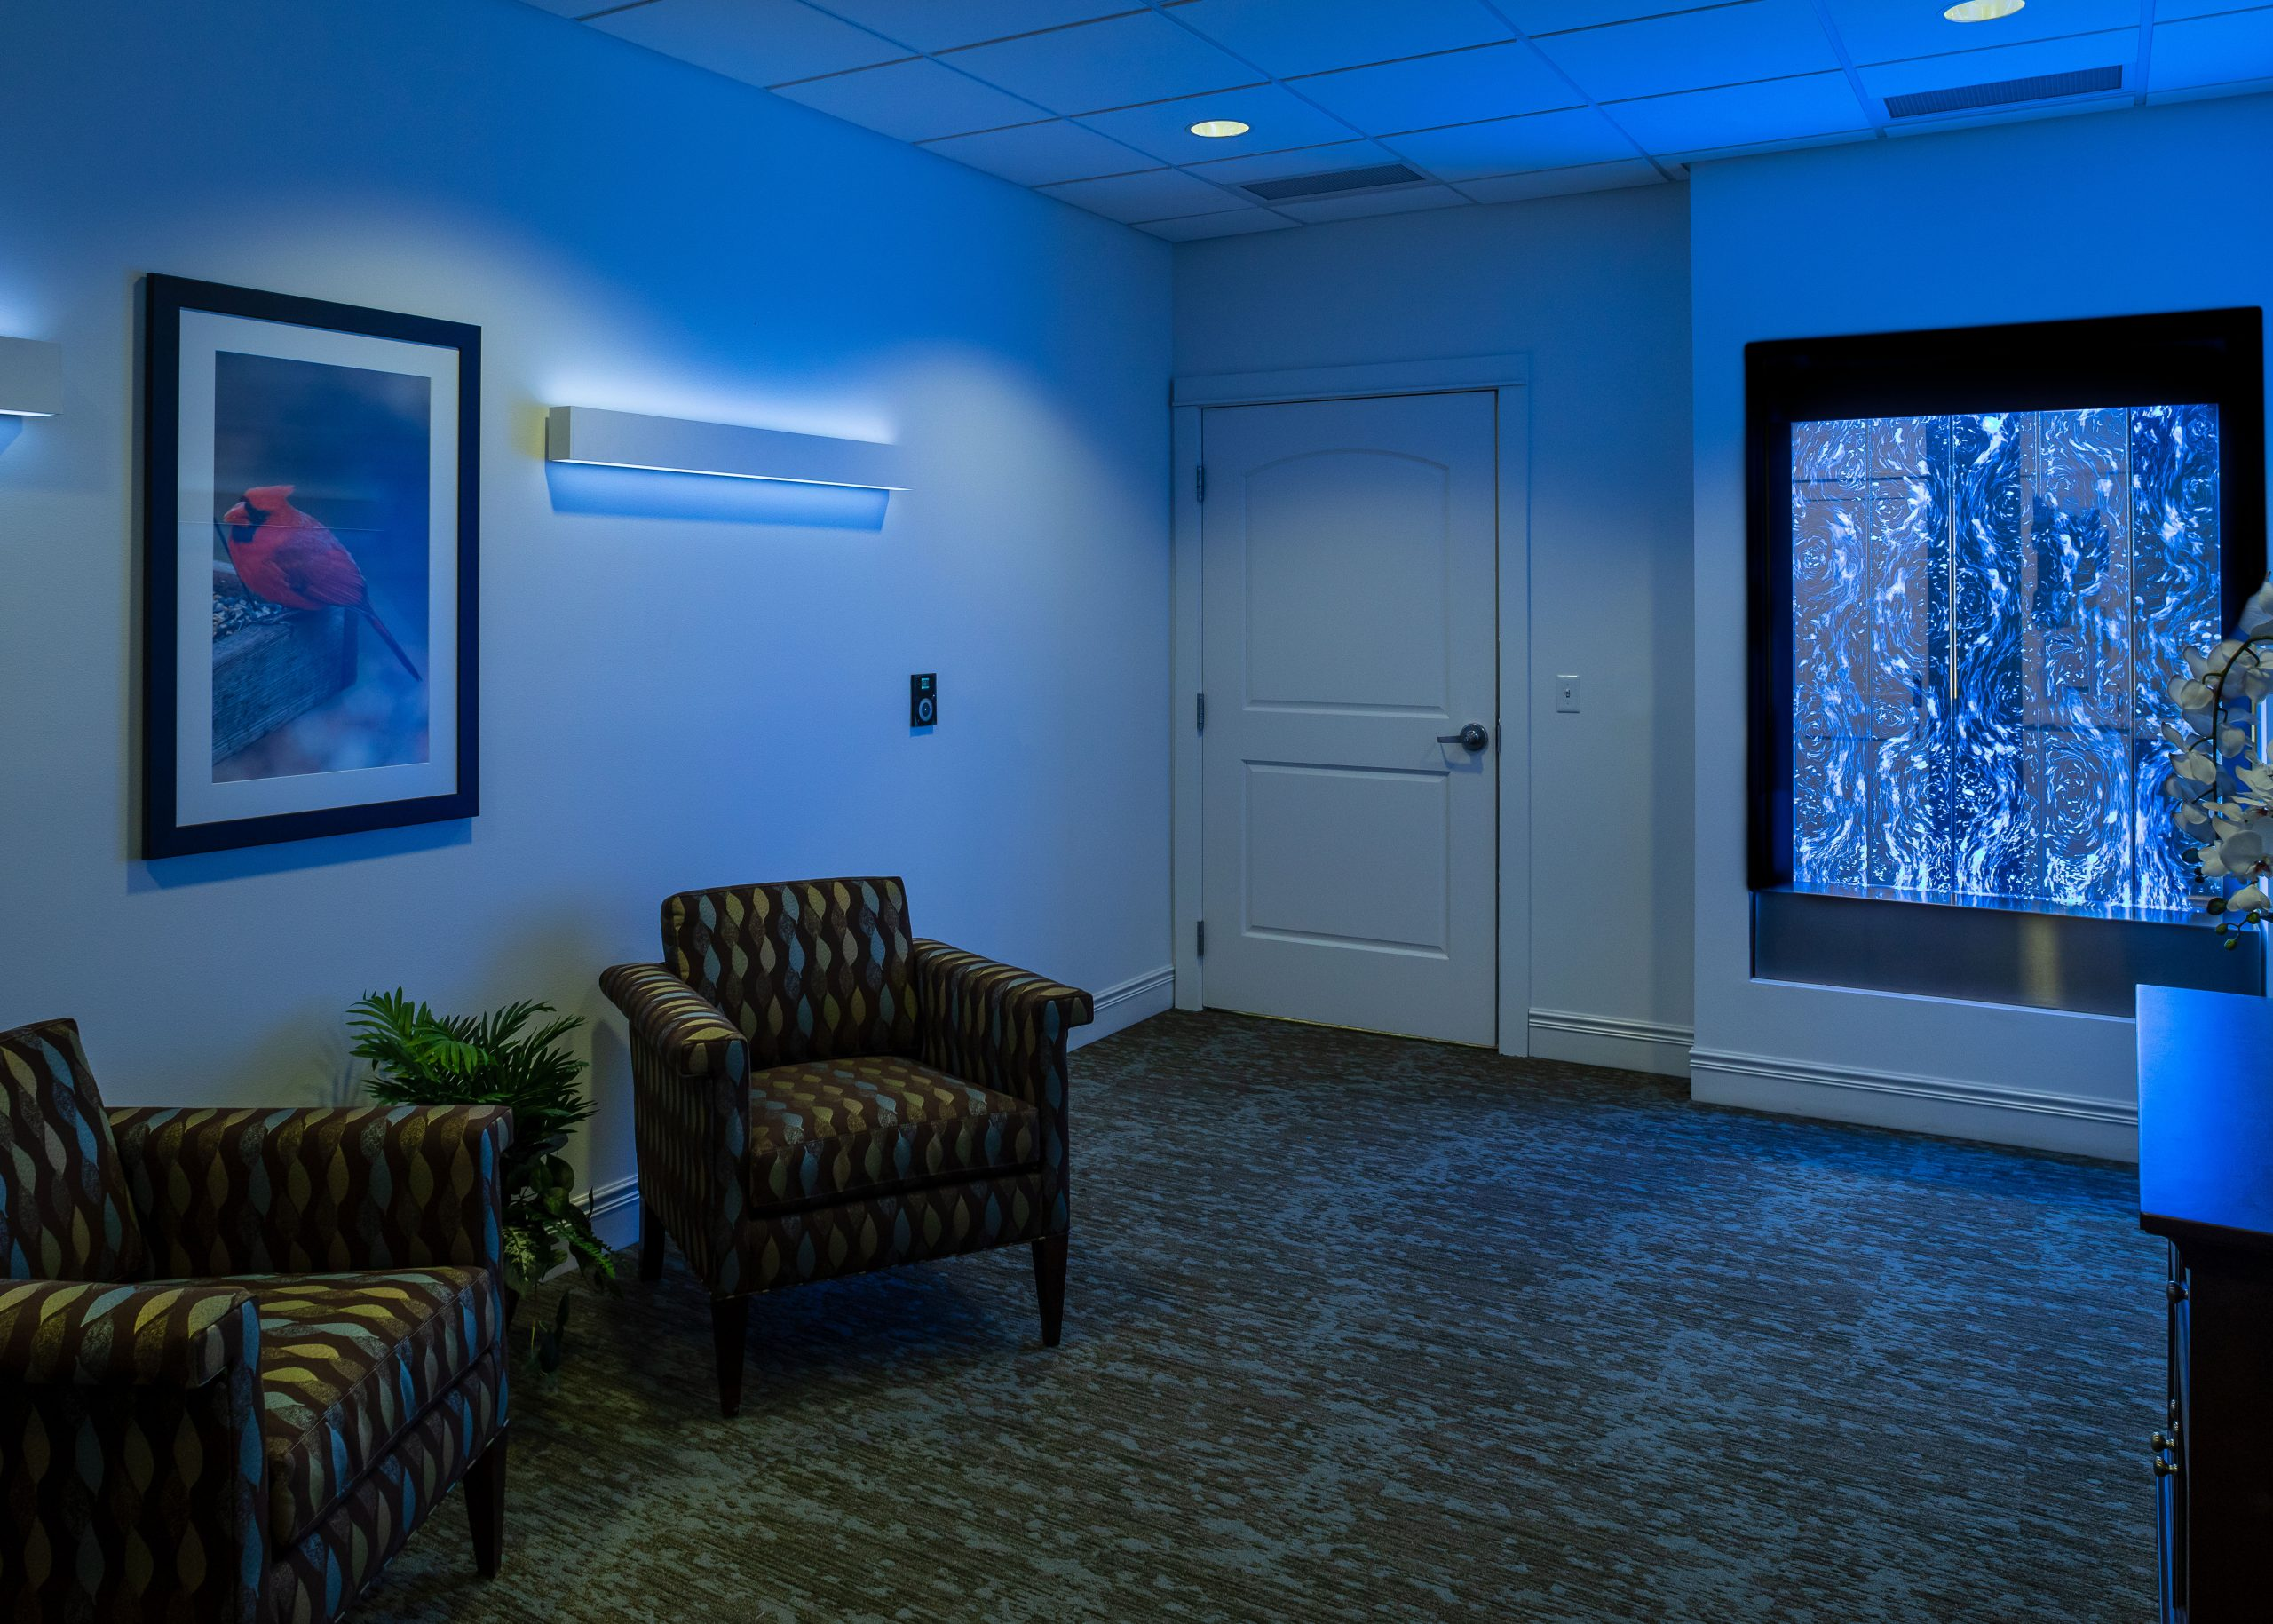 Enhanced Assisted Living and Memory Care with blue lighting, chairs and sensory wall